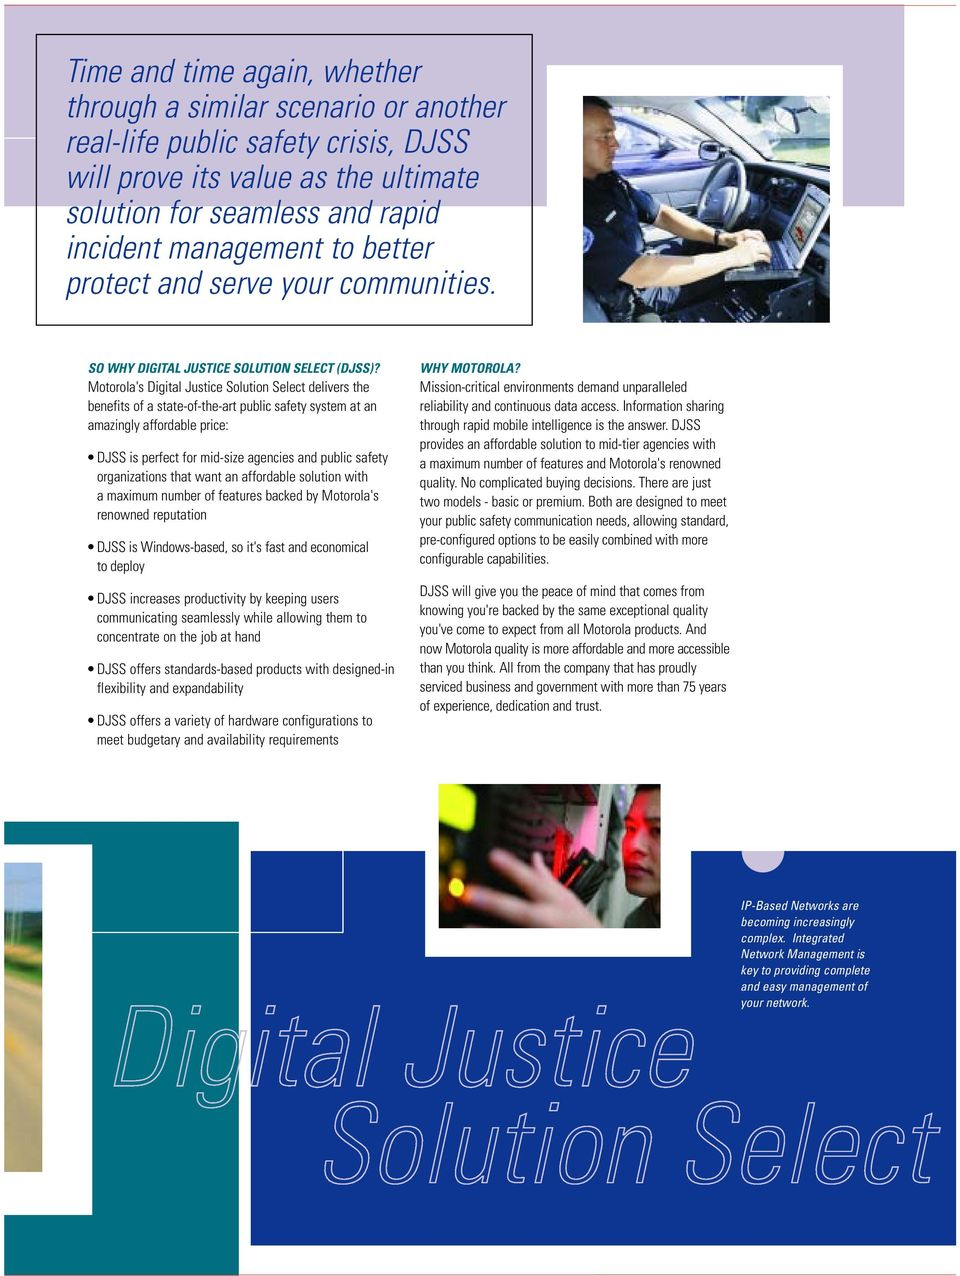 Motorola's Digital Justice Solution Select delivers the benefits of a state-of-the-art public safety system at an amazingly affordable price: DJSS is perfect for mid-size agencies and public safety